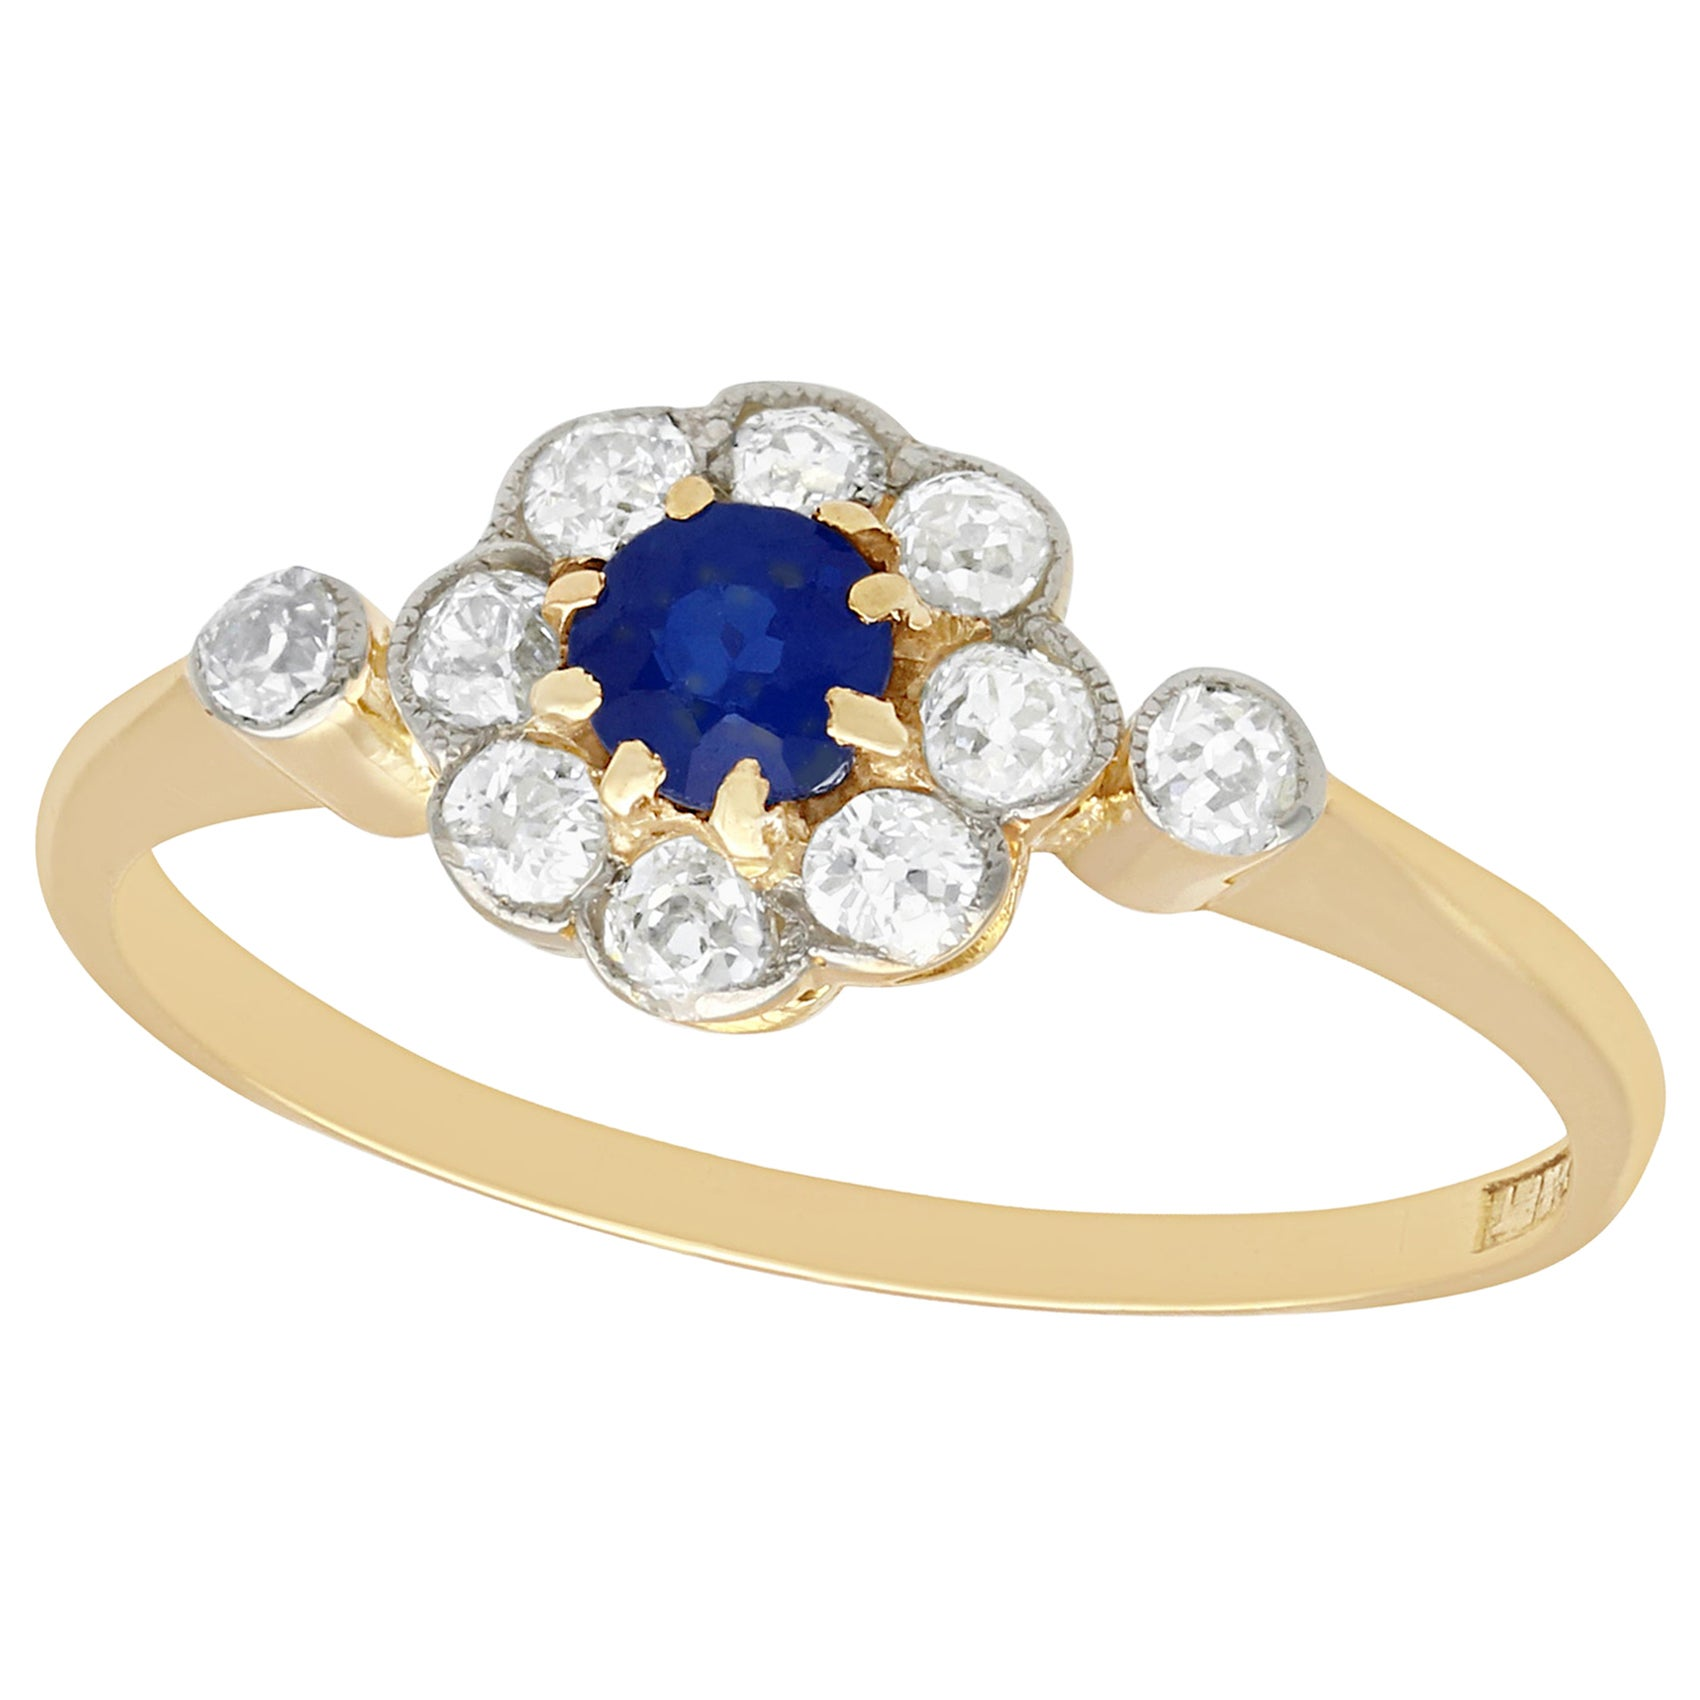 Antique 1920s Sapphire and Diamond Yellow Gold Cocktail Ring